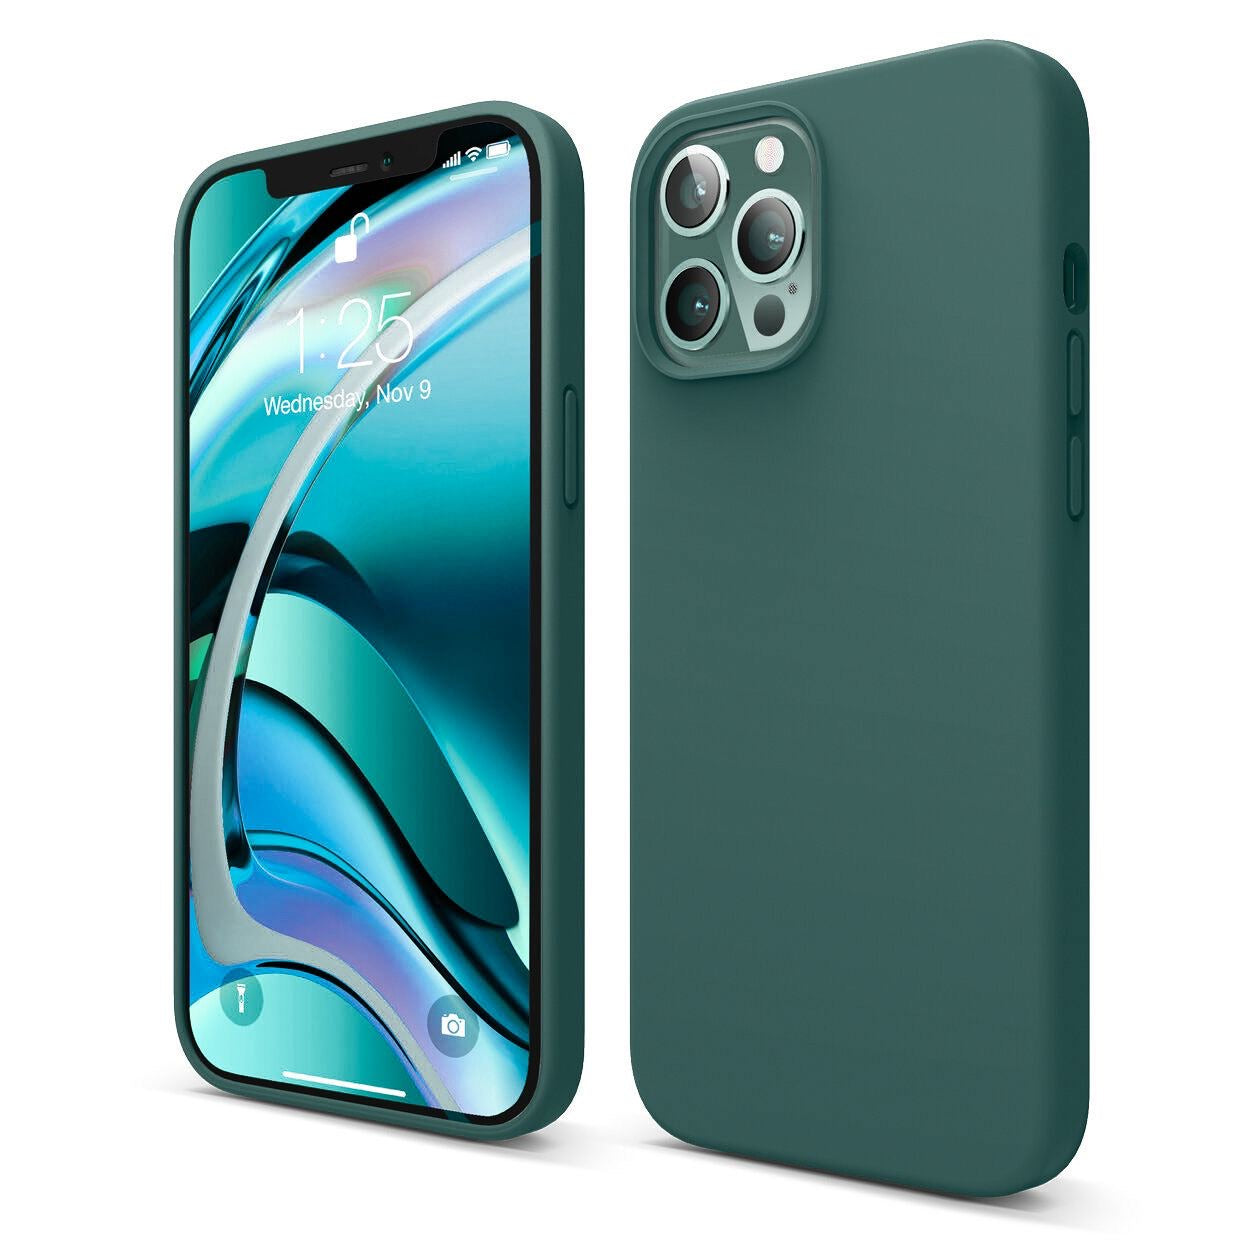 Mons Liquid Silicone Case For IPhone (2020) - Midnight Green